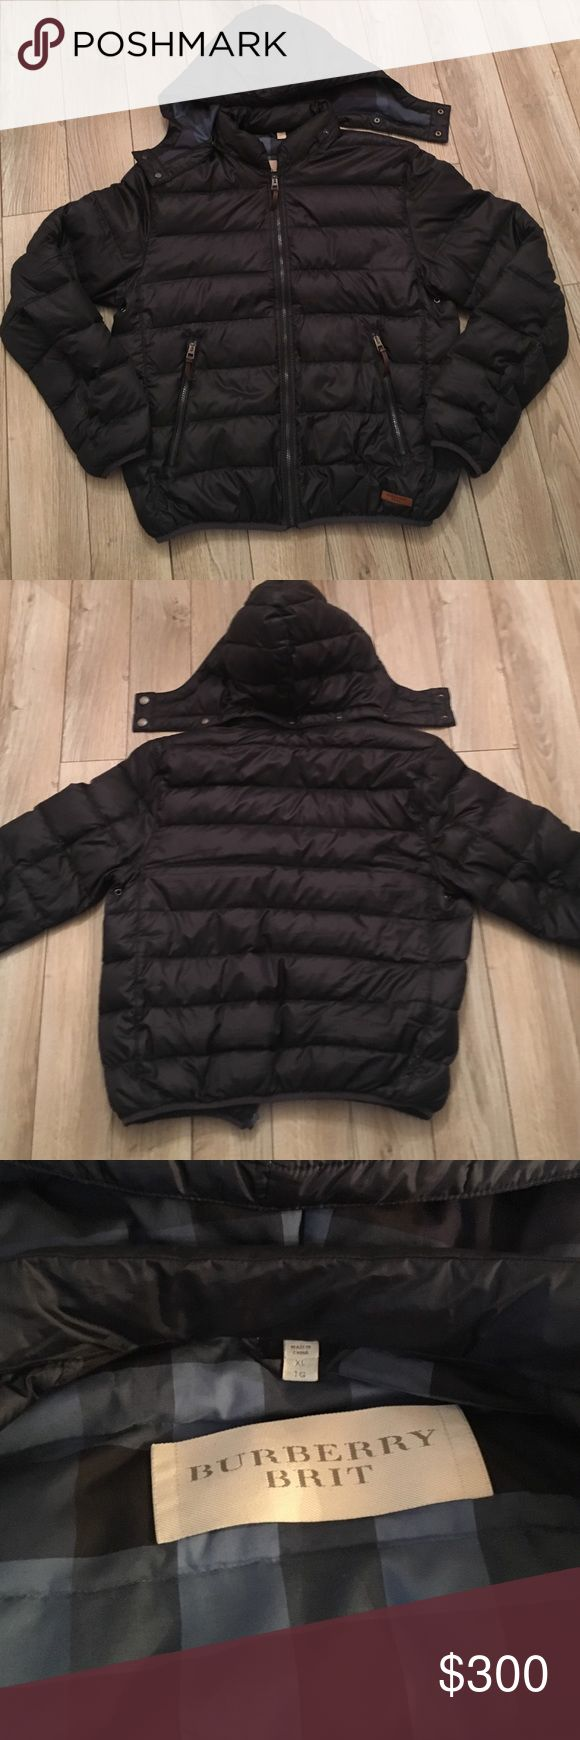 Burberry Men's puffer coat size XL Used men's coat good condition please see photos, my husband said it runs small that's why he got an xl. any questions please don't hesitate to ask thanks!! Burberry Jackets & Coats Puffers